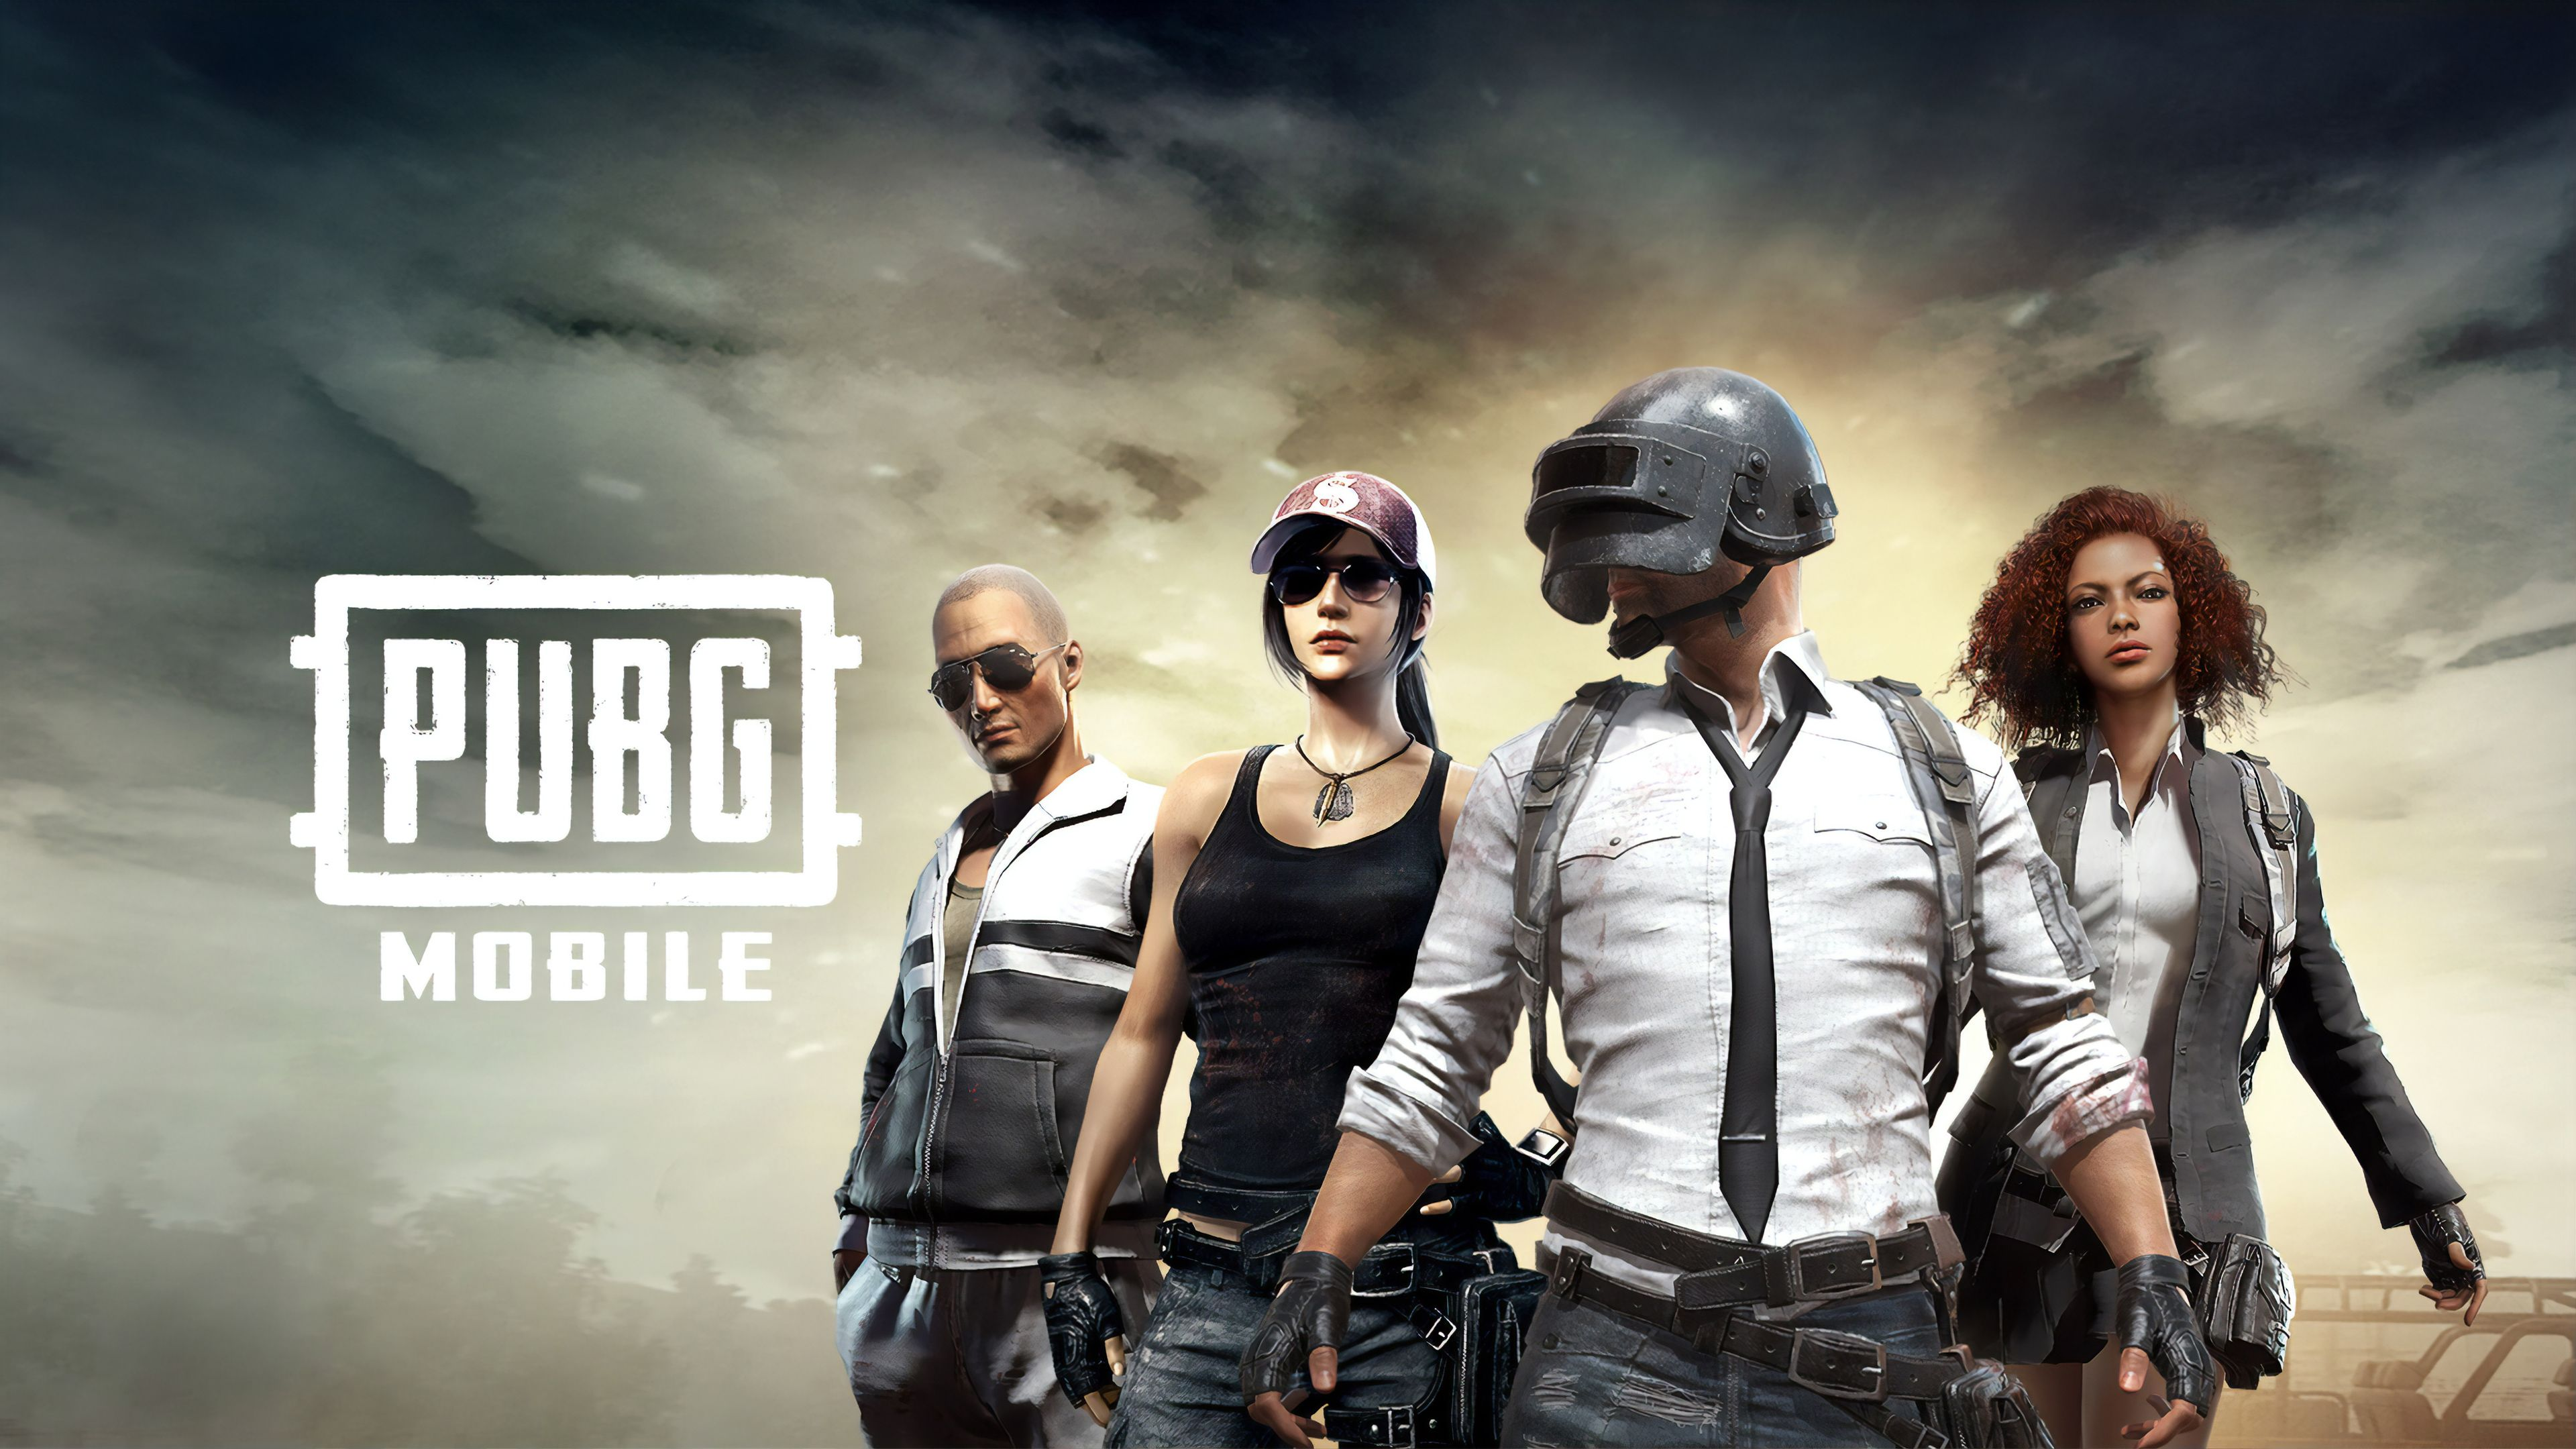 Pubg Mobile 4k Pubg Wallpapers Playerunknowns Battlegrounds Wallpapers Hd Wallpapers Games Wallpapers 4k Hd Wallpapers For Pc Mobile Wallpaper Wallpaper Pc